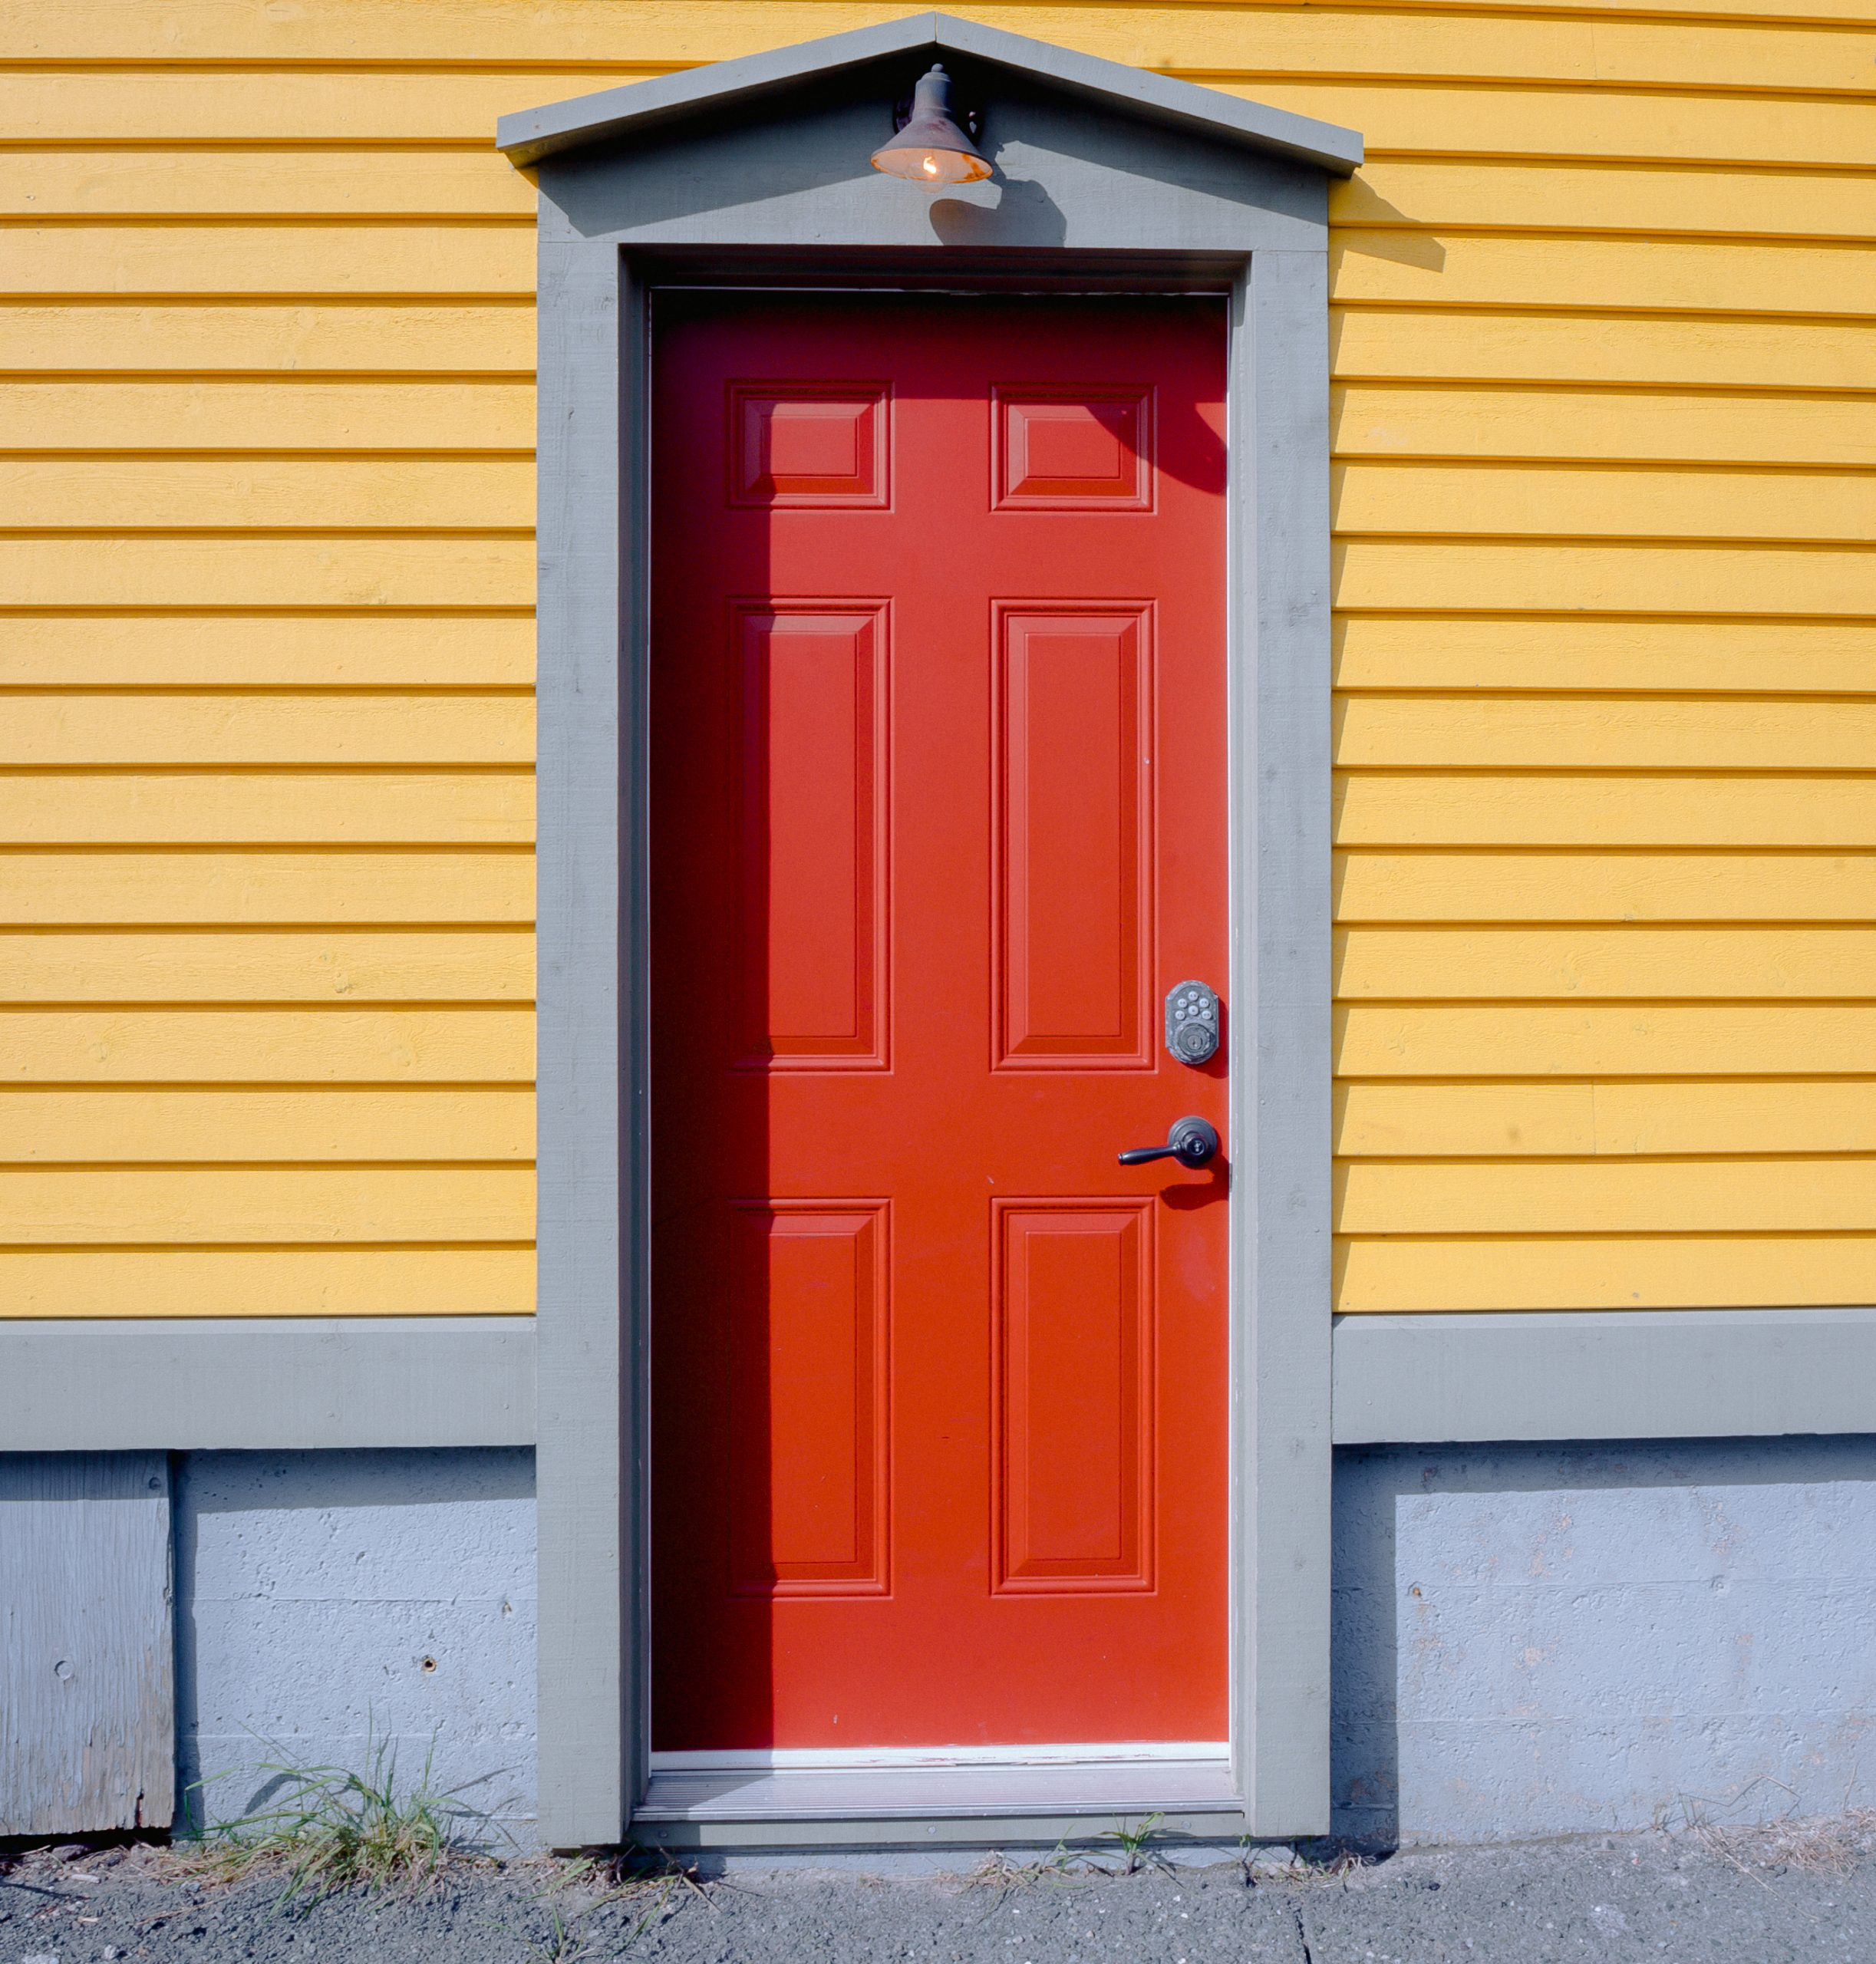 Image of a closed red door on a yellow building